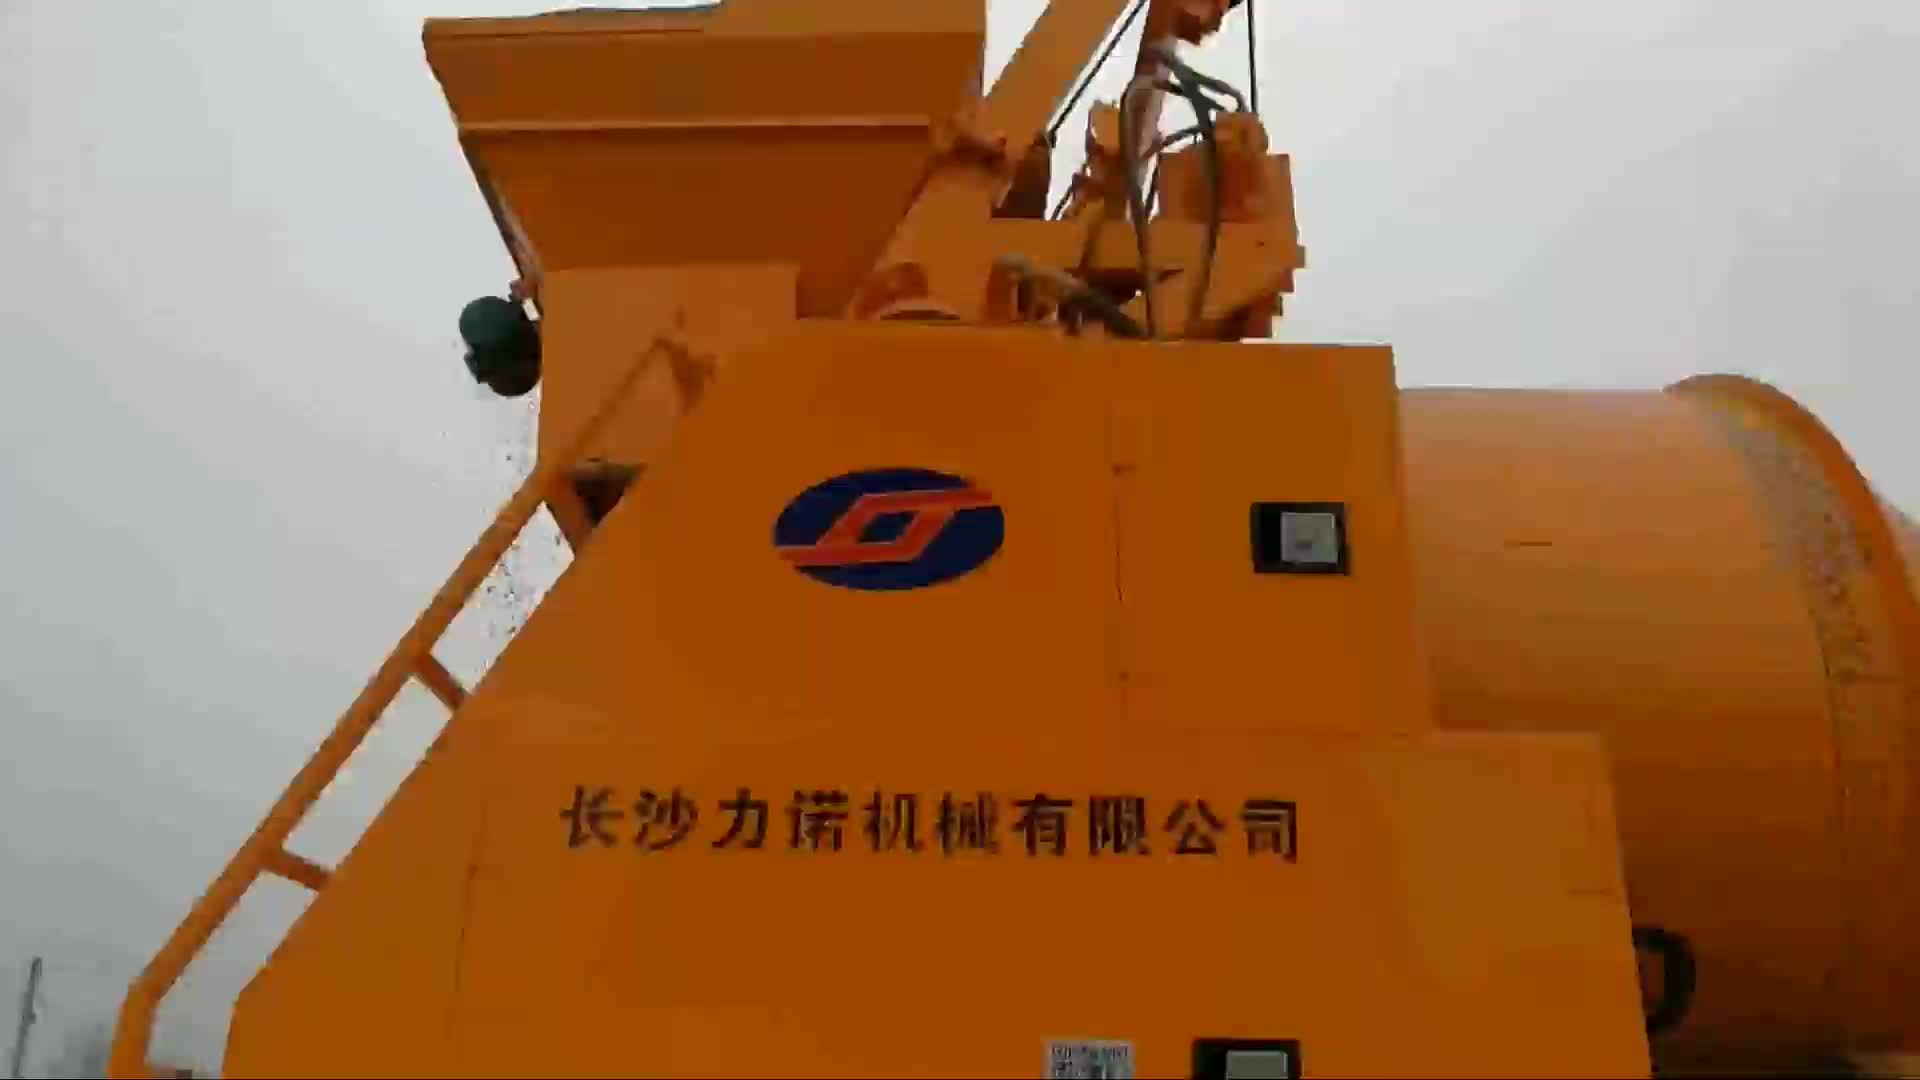 Mini Betonpomp Mini Concrete Pump Concrete Mixer Drum For Sale With Good